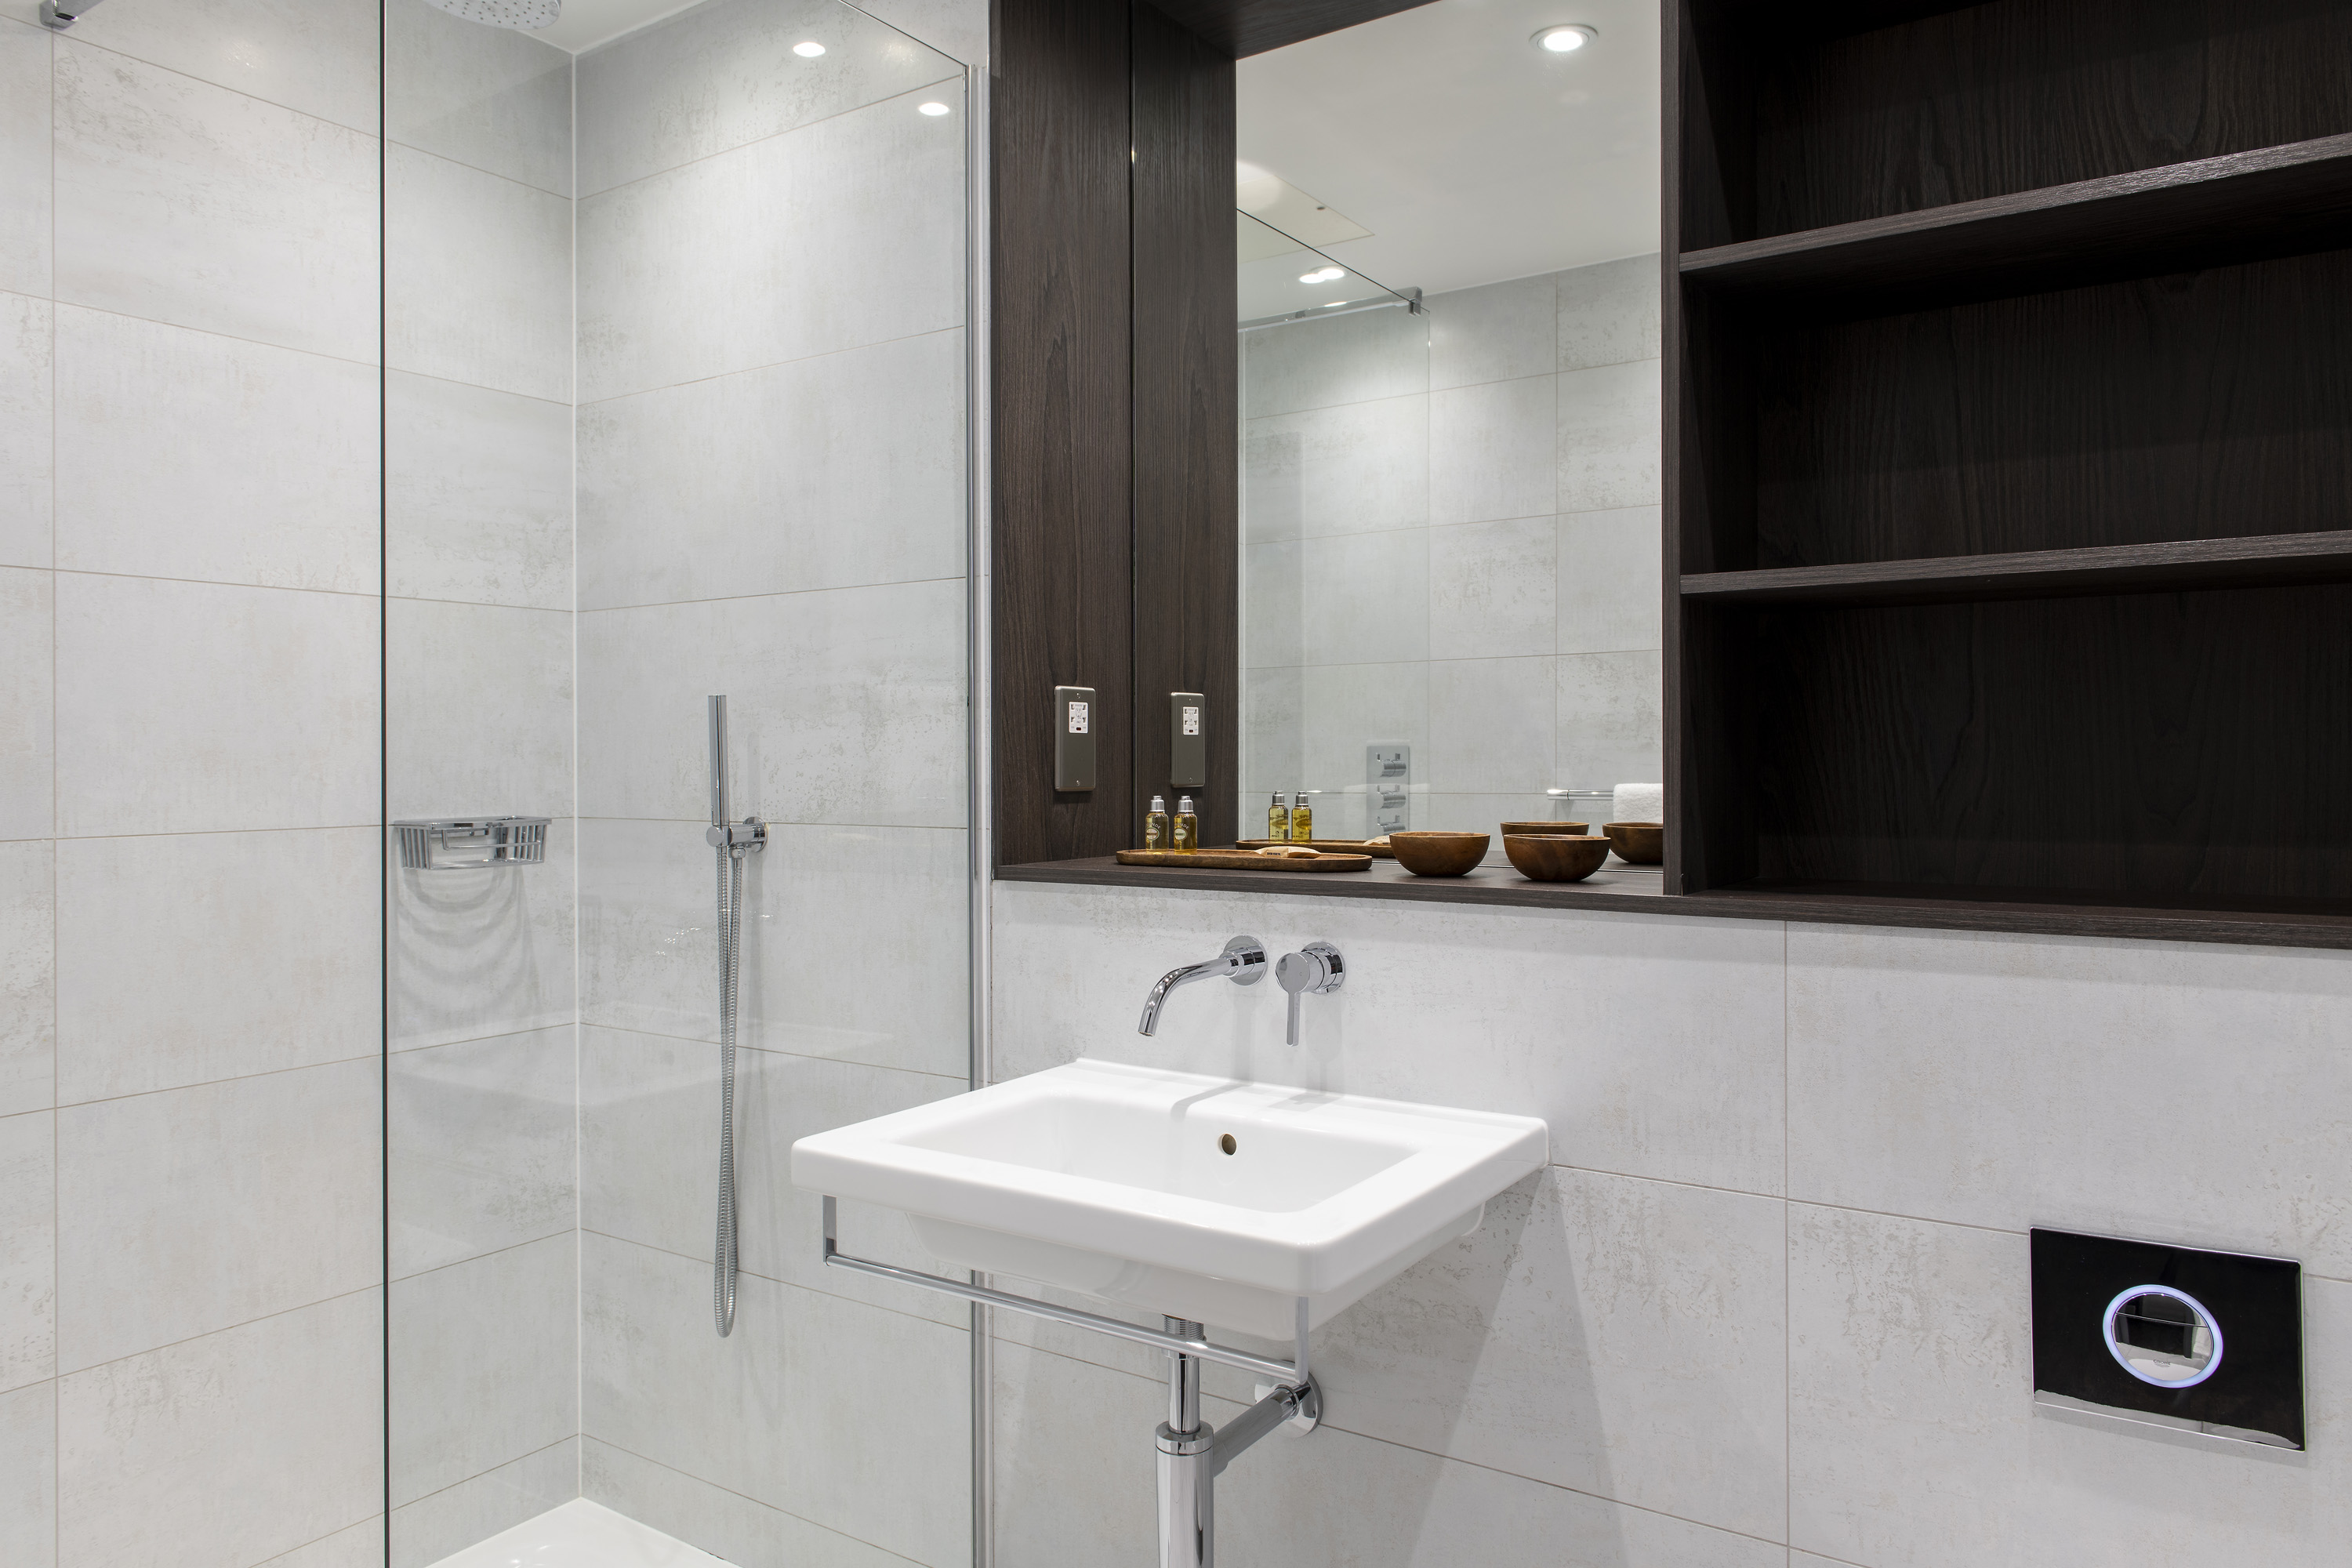 Bathroom at COVE Cannon Street, Mansion House, London - Citybase Apartments